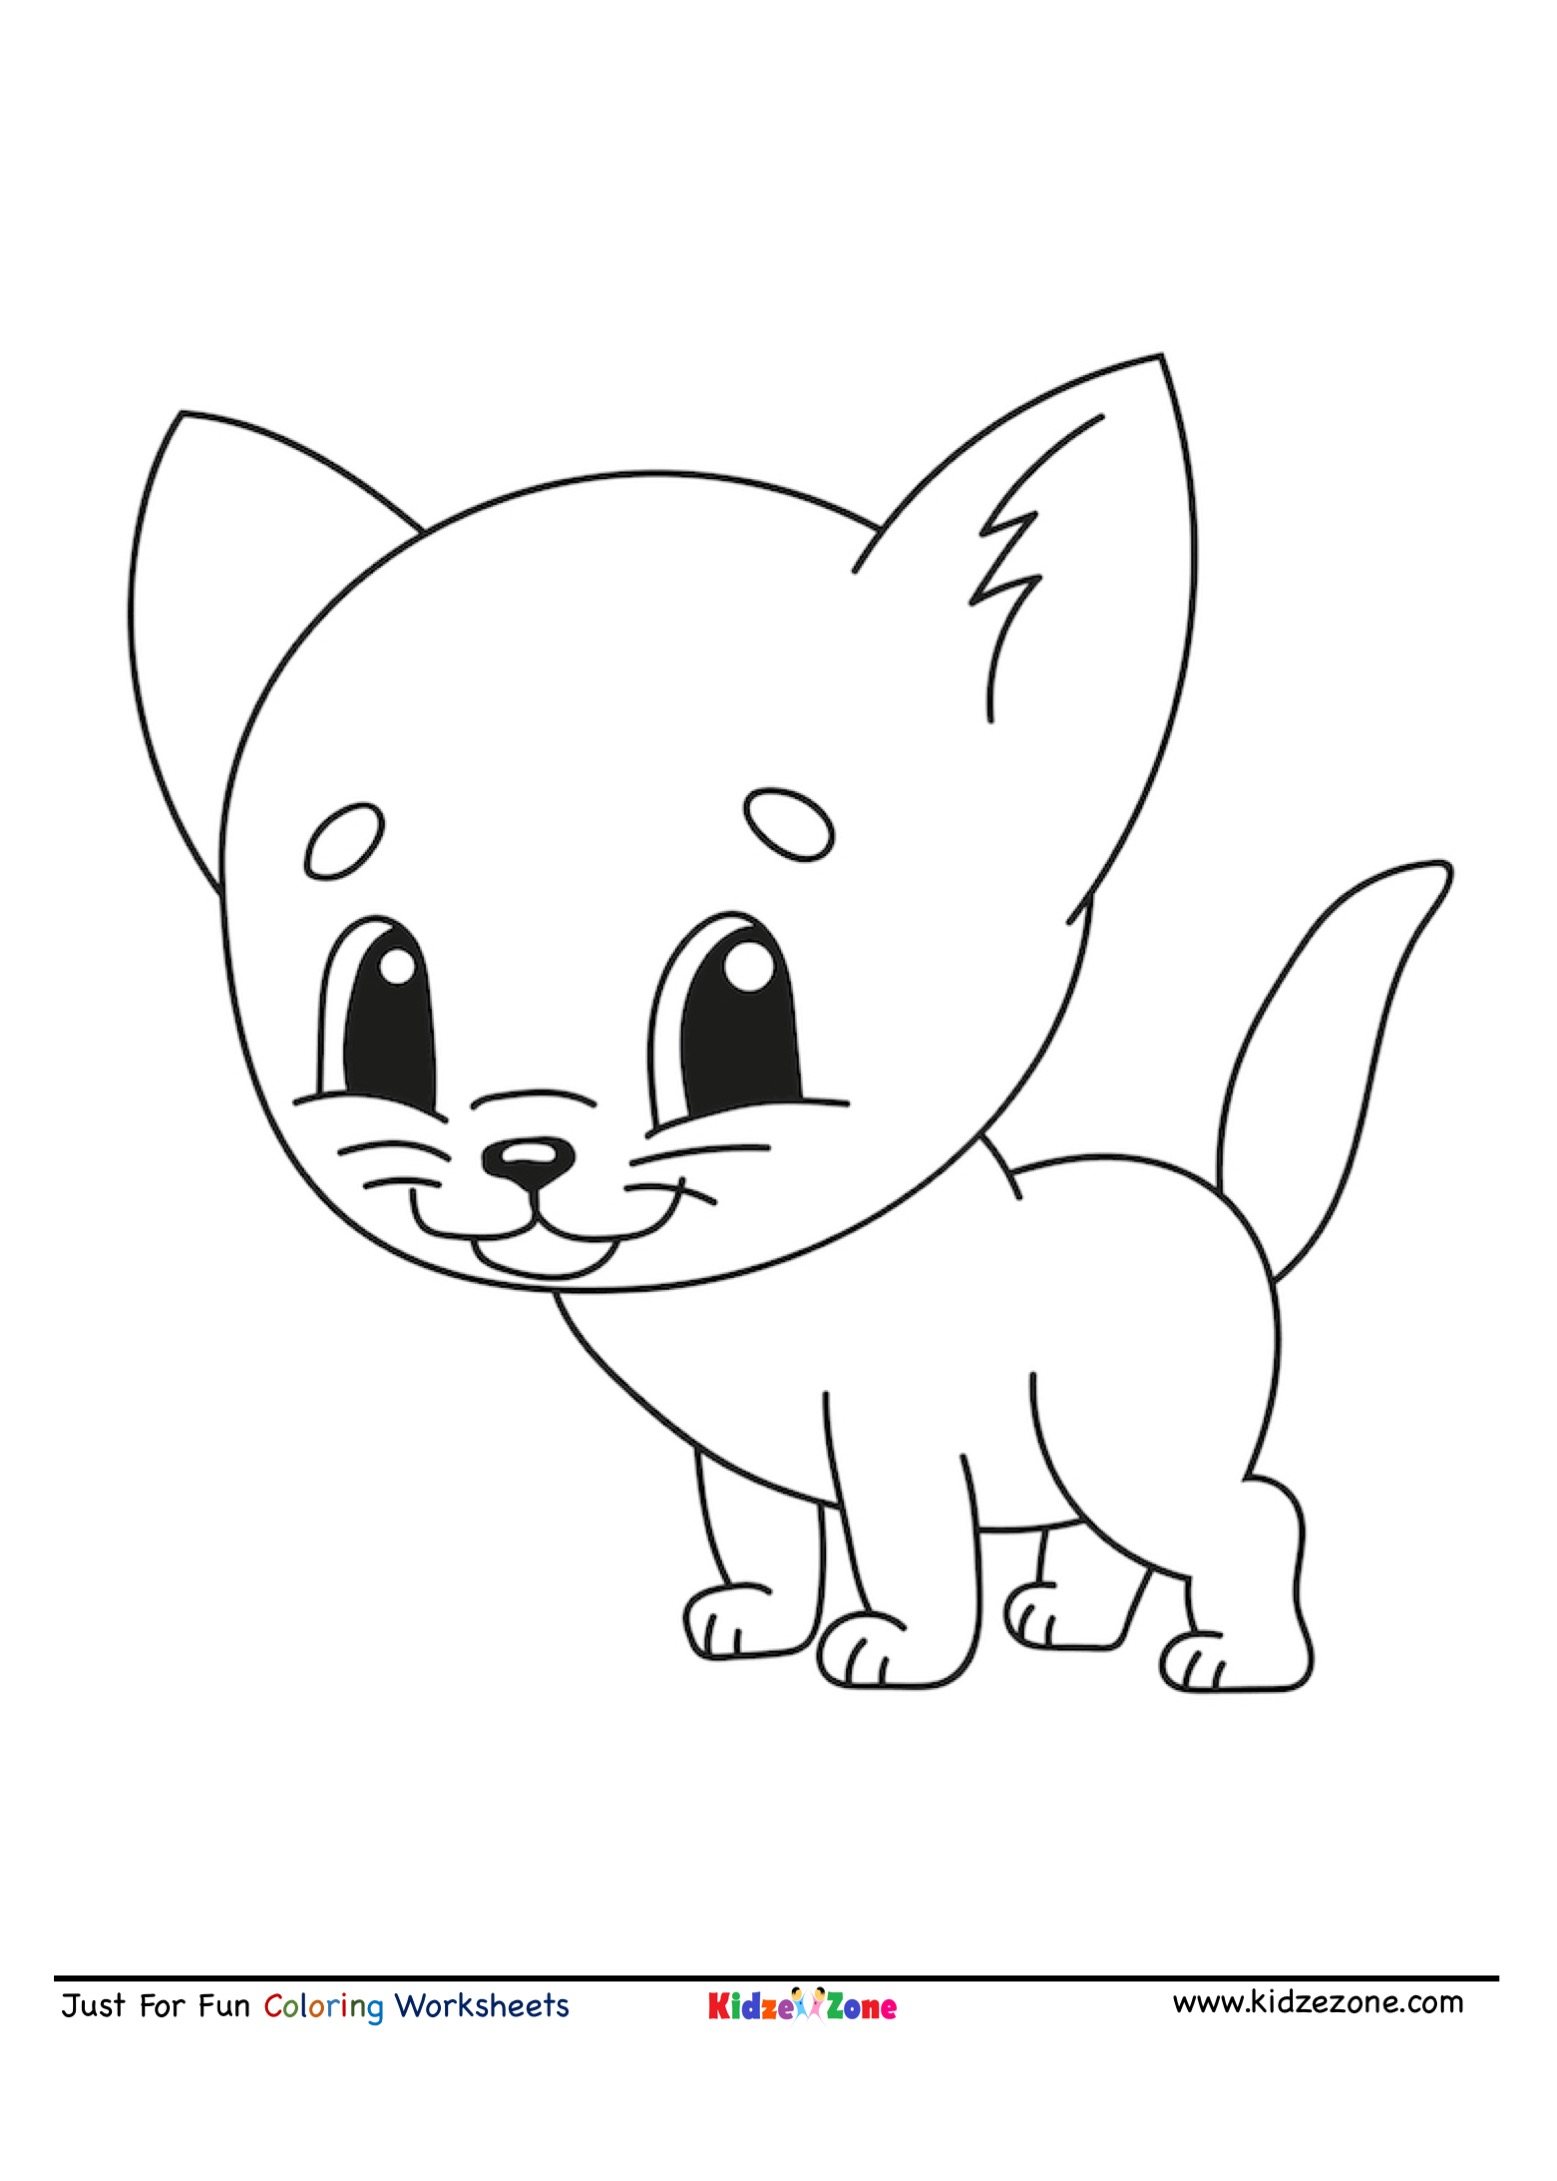 Cute Kitten Cartoon Coloring Page